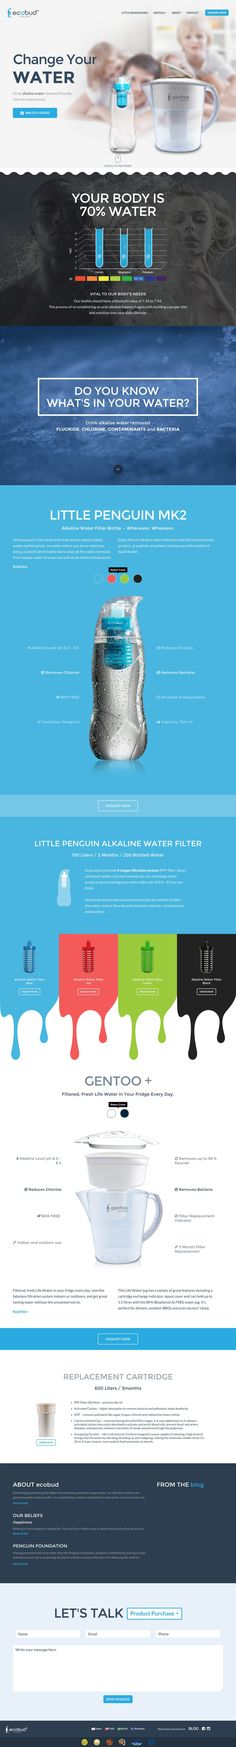 """Good looking responsive landing page for 'Ecobud' - a water filter product. Quite like that color changing feature in the """"Little Penguin MK2' section that changes the background color as well."""